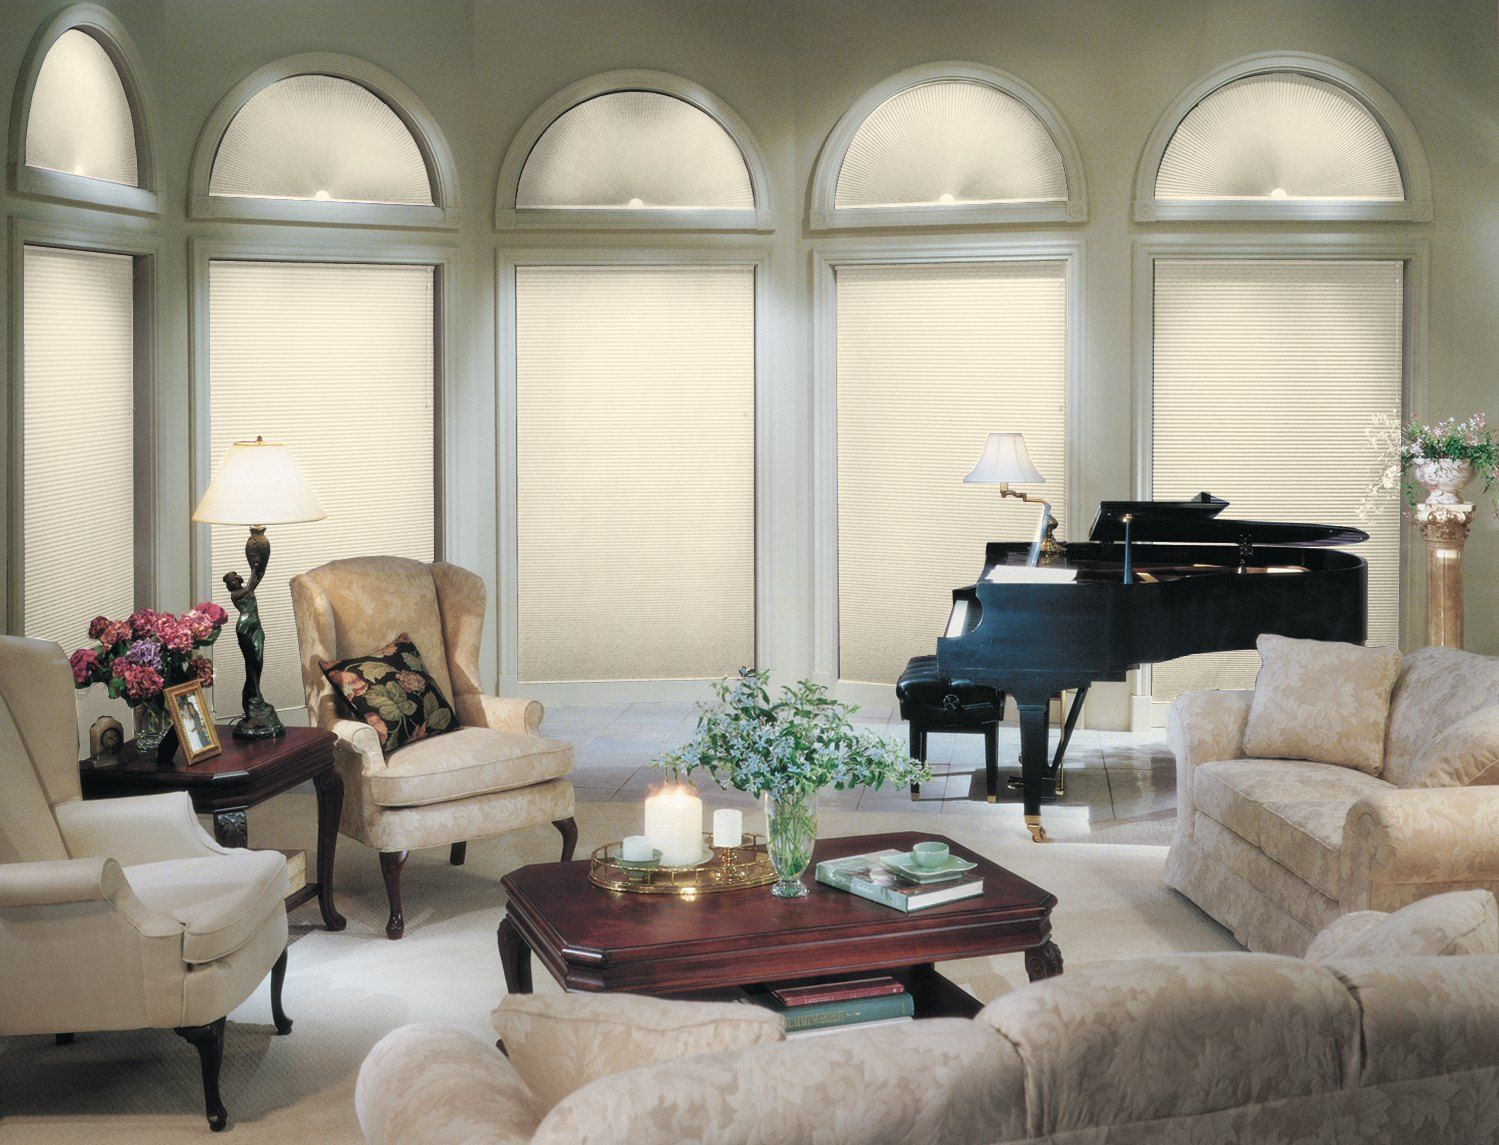 blinds half to beautiful window circle decorate unnamed windows for file an gallery decorating how arch a